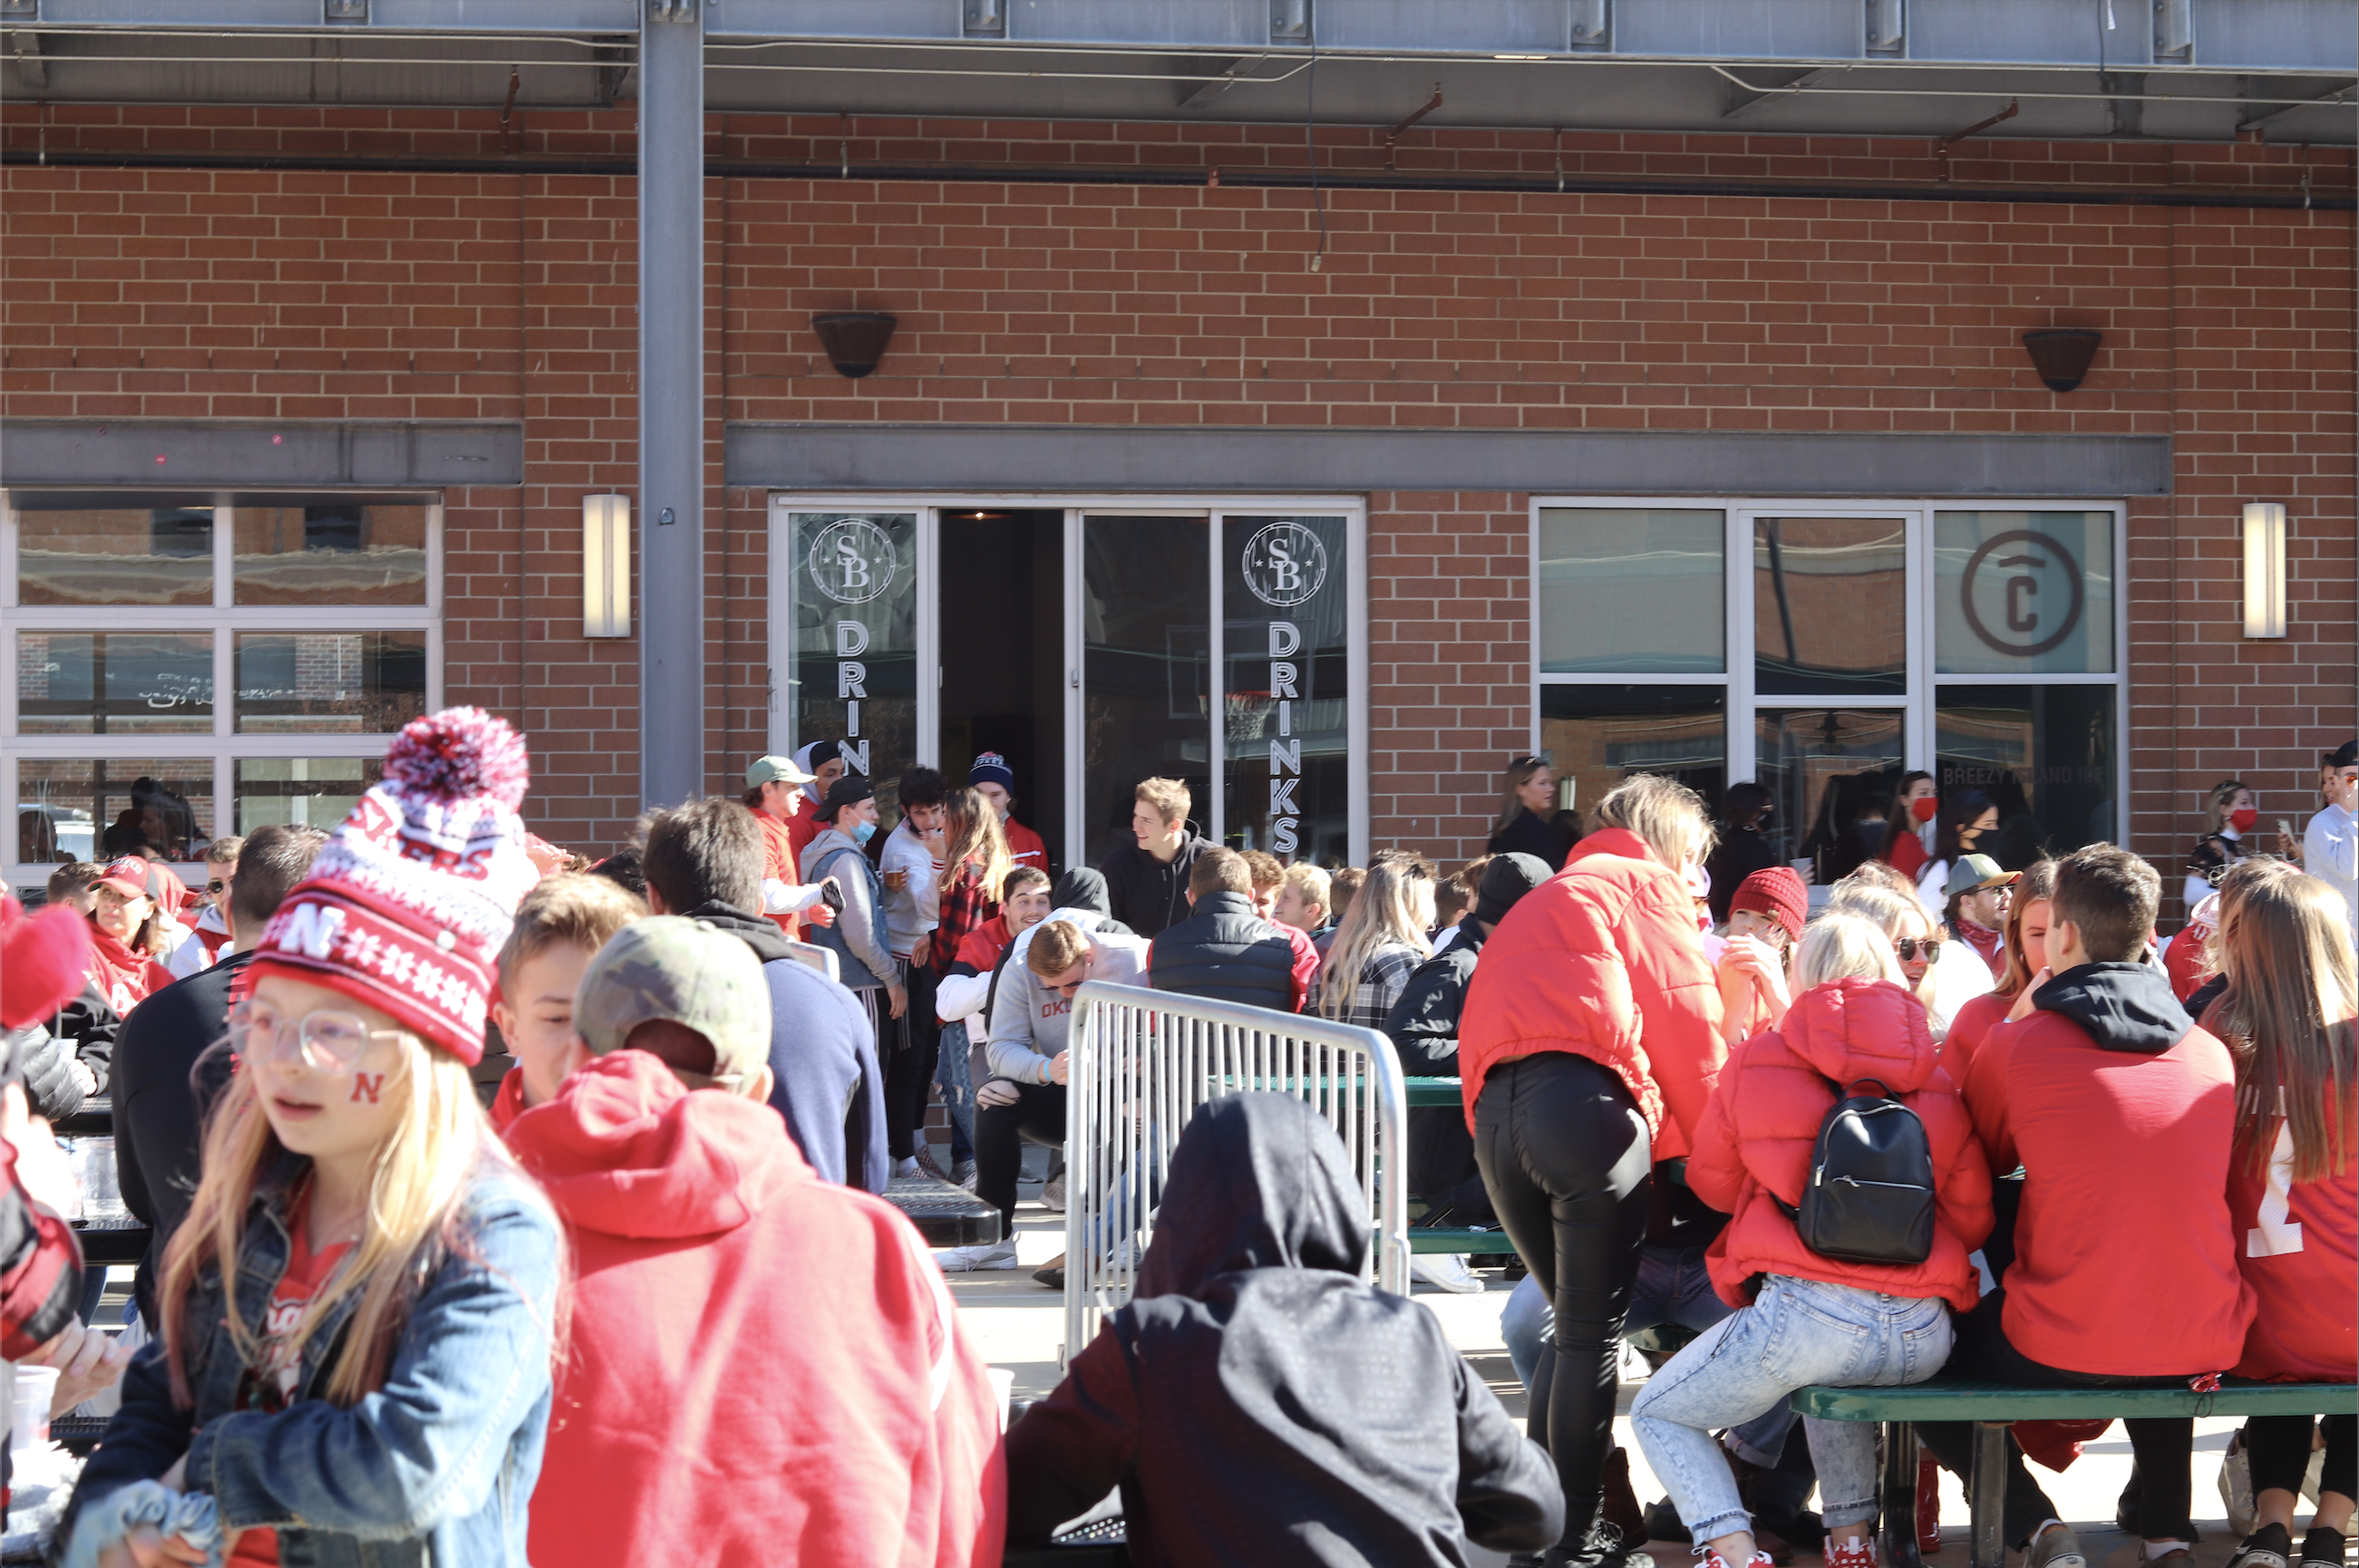 Huskers fans at The Railyard watch Saturday's game between Nebraska and Northwestern on Saturday, Nov. 7. Photo by James Rowland